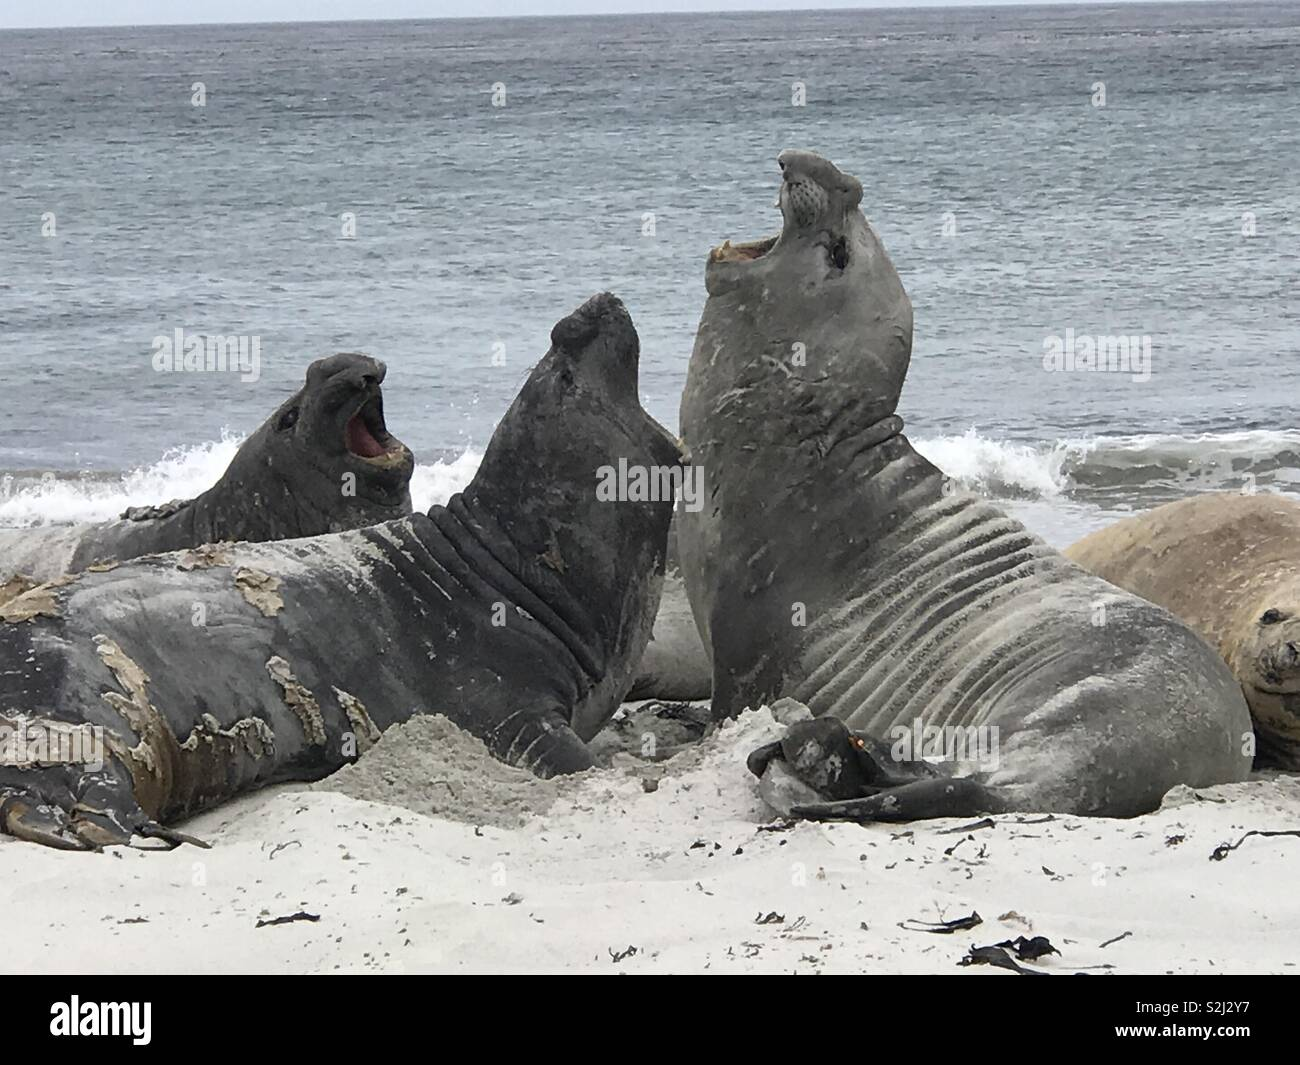 Yawning sea elephants - Stock Image